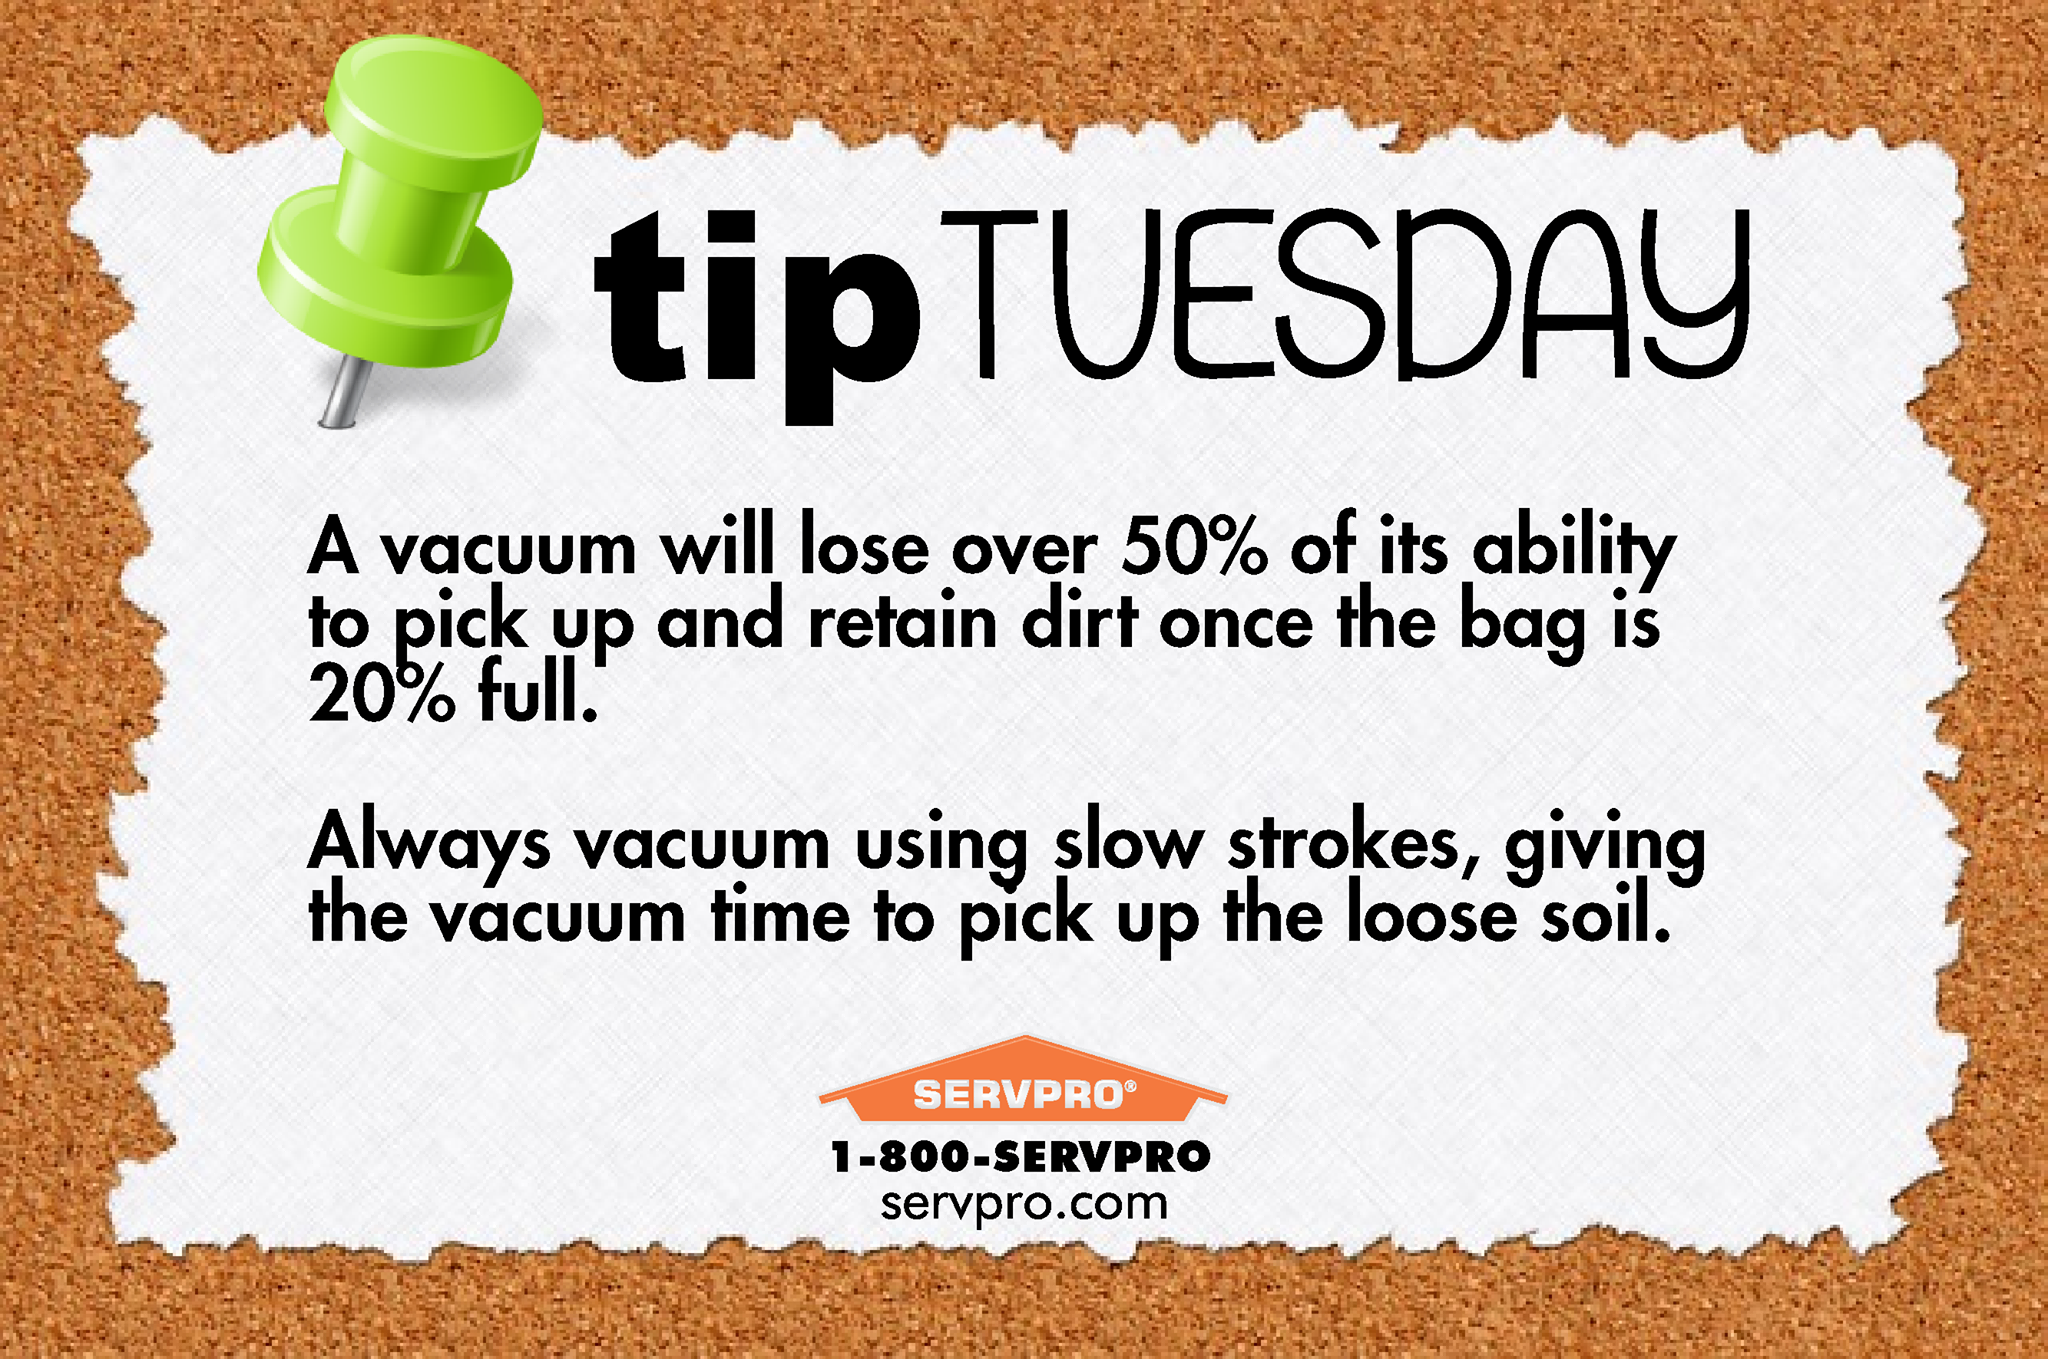 call servpro of bordentown for your next carpet cleaning 609 894